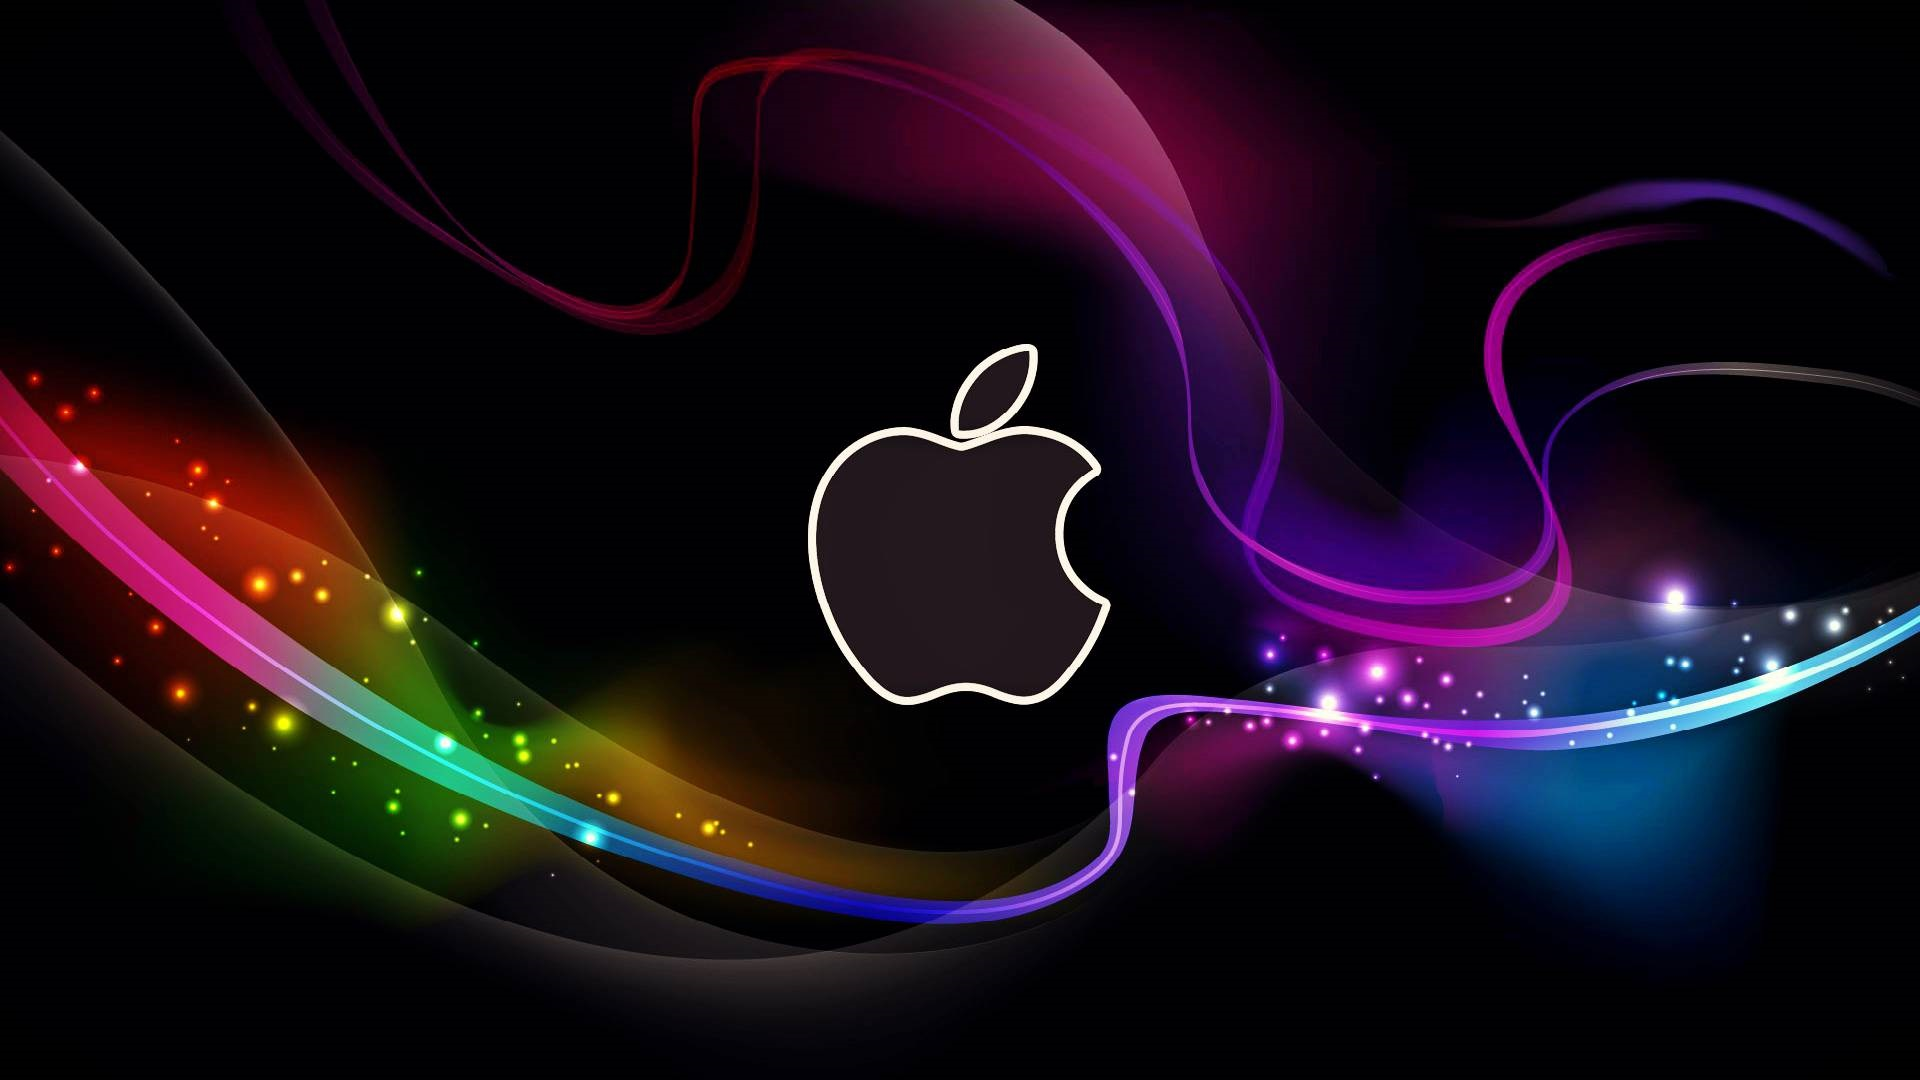 Wallpaper Abstract Apple Logo Colorful Lines 19x1080 Full Hd 2k Picture Image